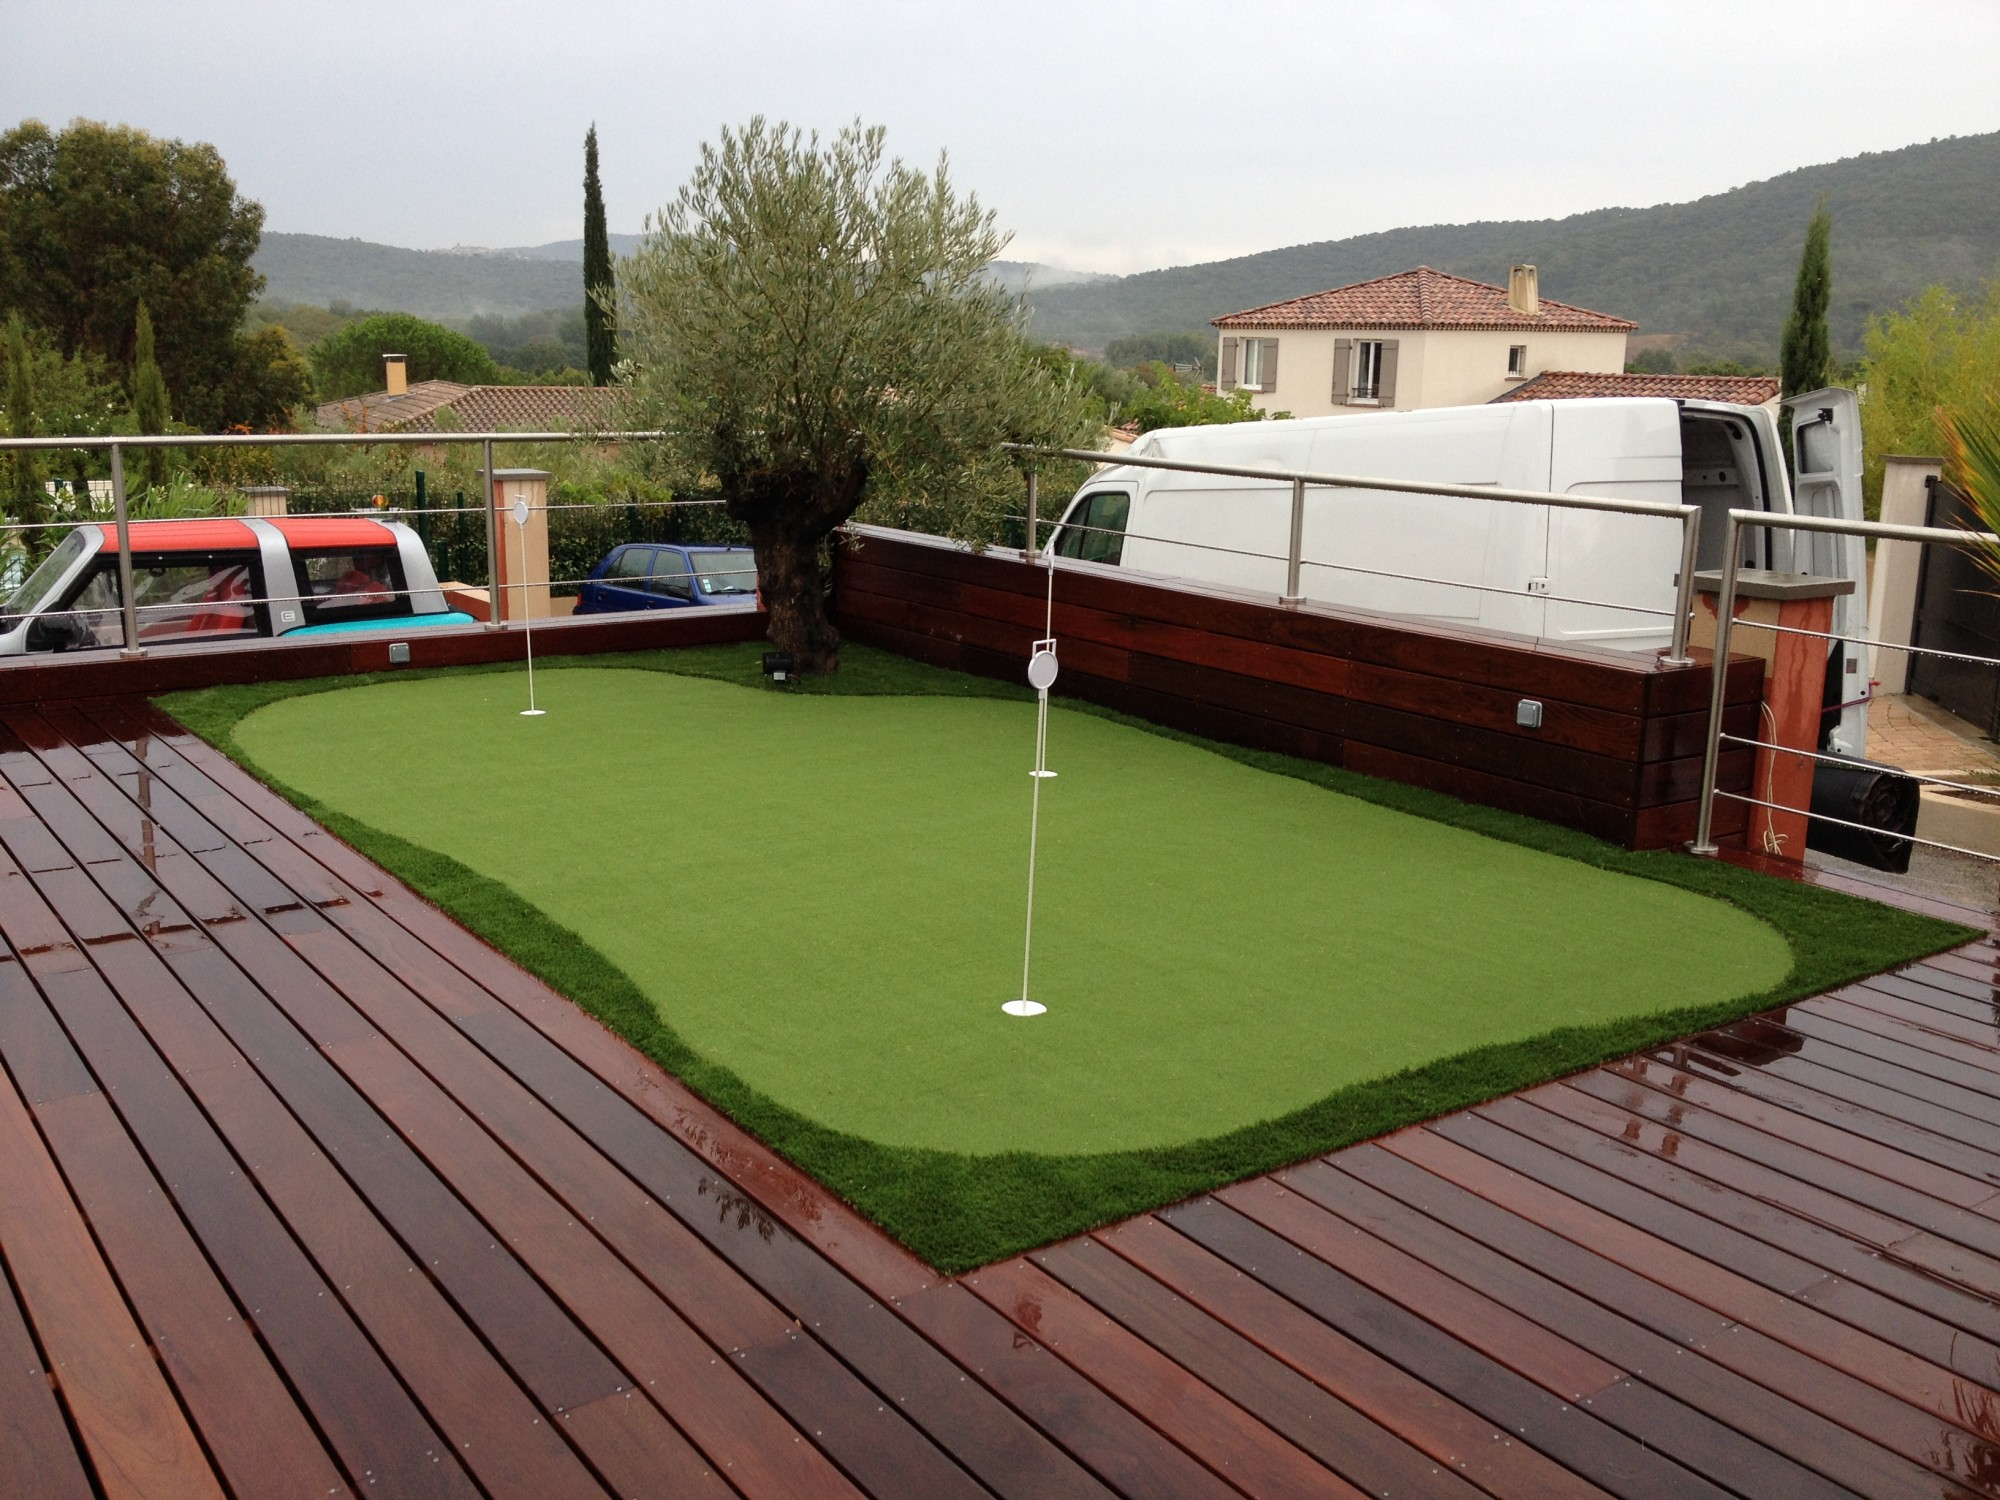 installer un putting green synth tique soi m me gazon et. Black Bedroom Furniture Sets. Home Design Ideas